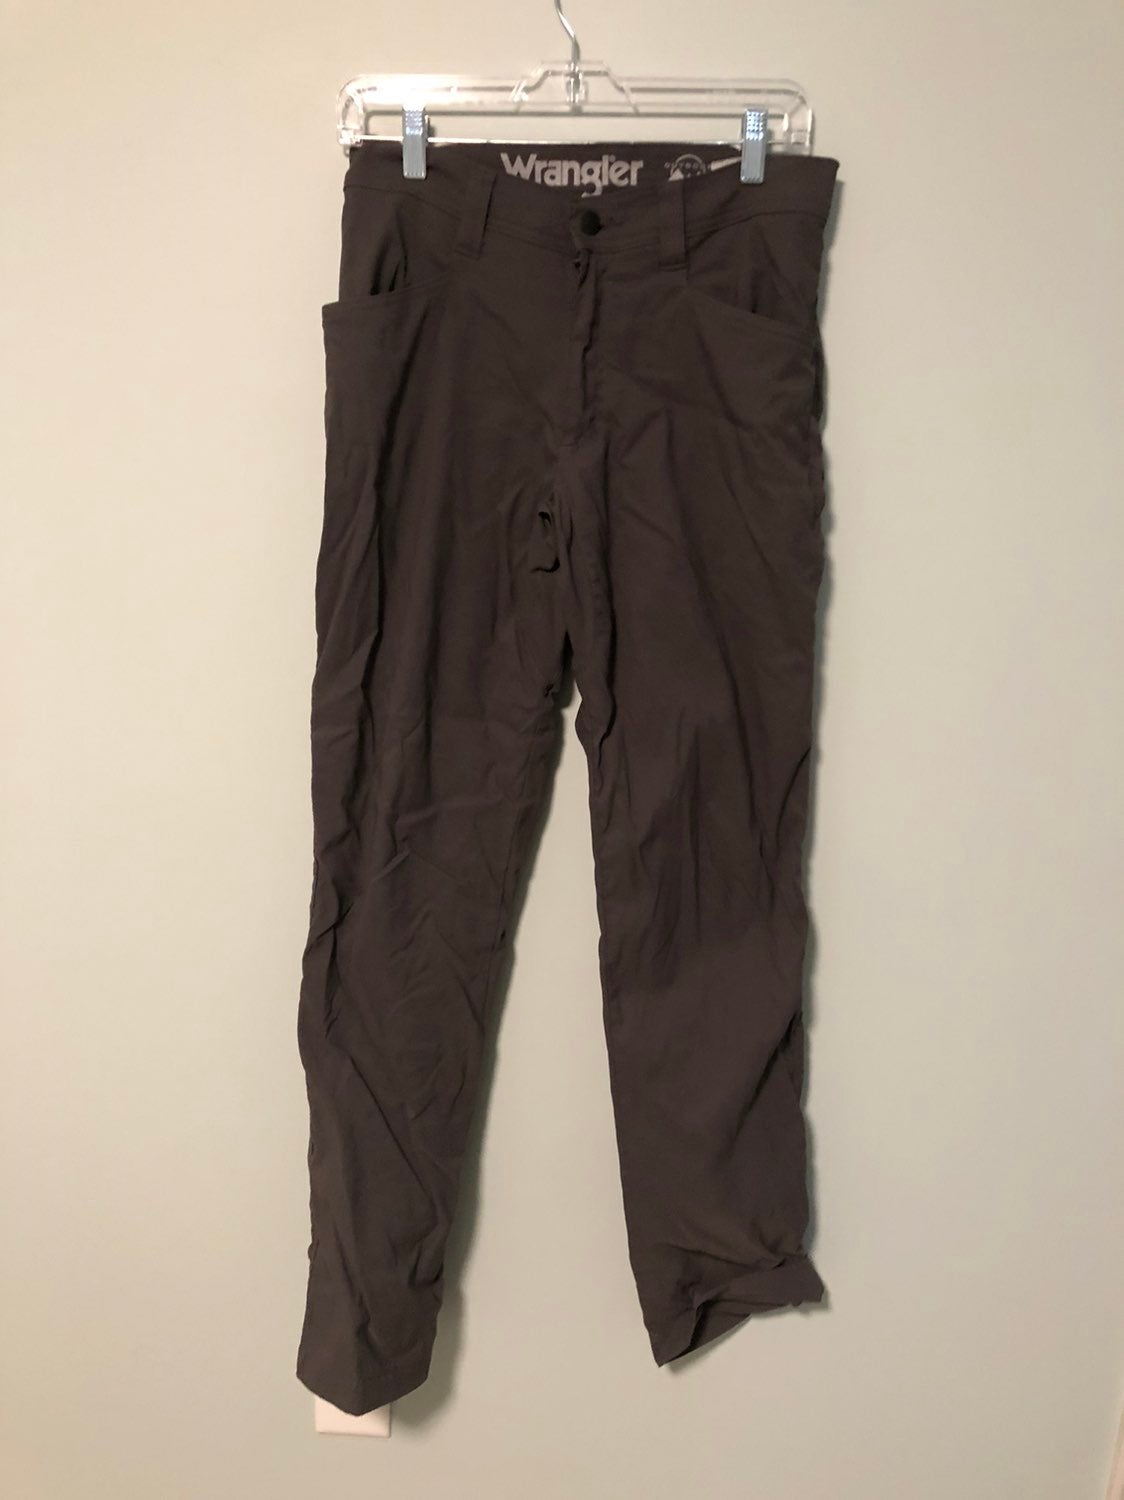 Mens Insulated Wrangler Pants